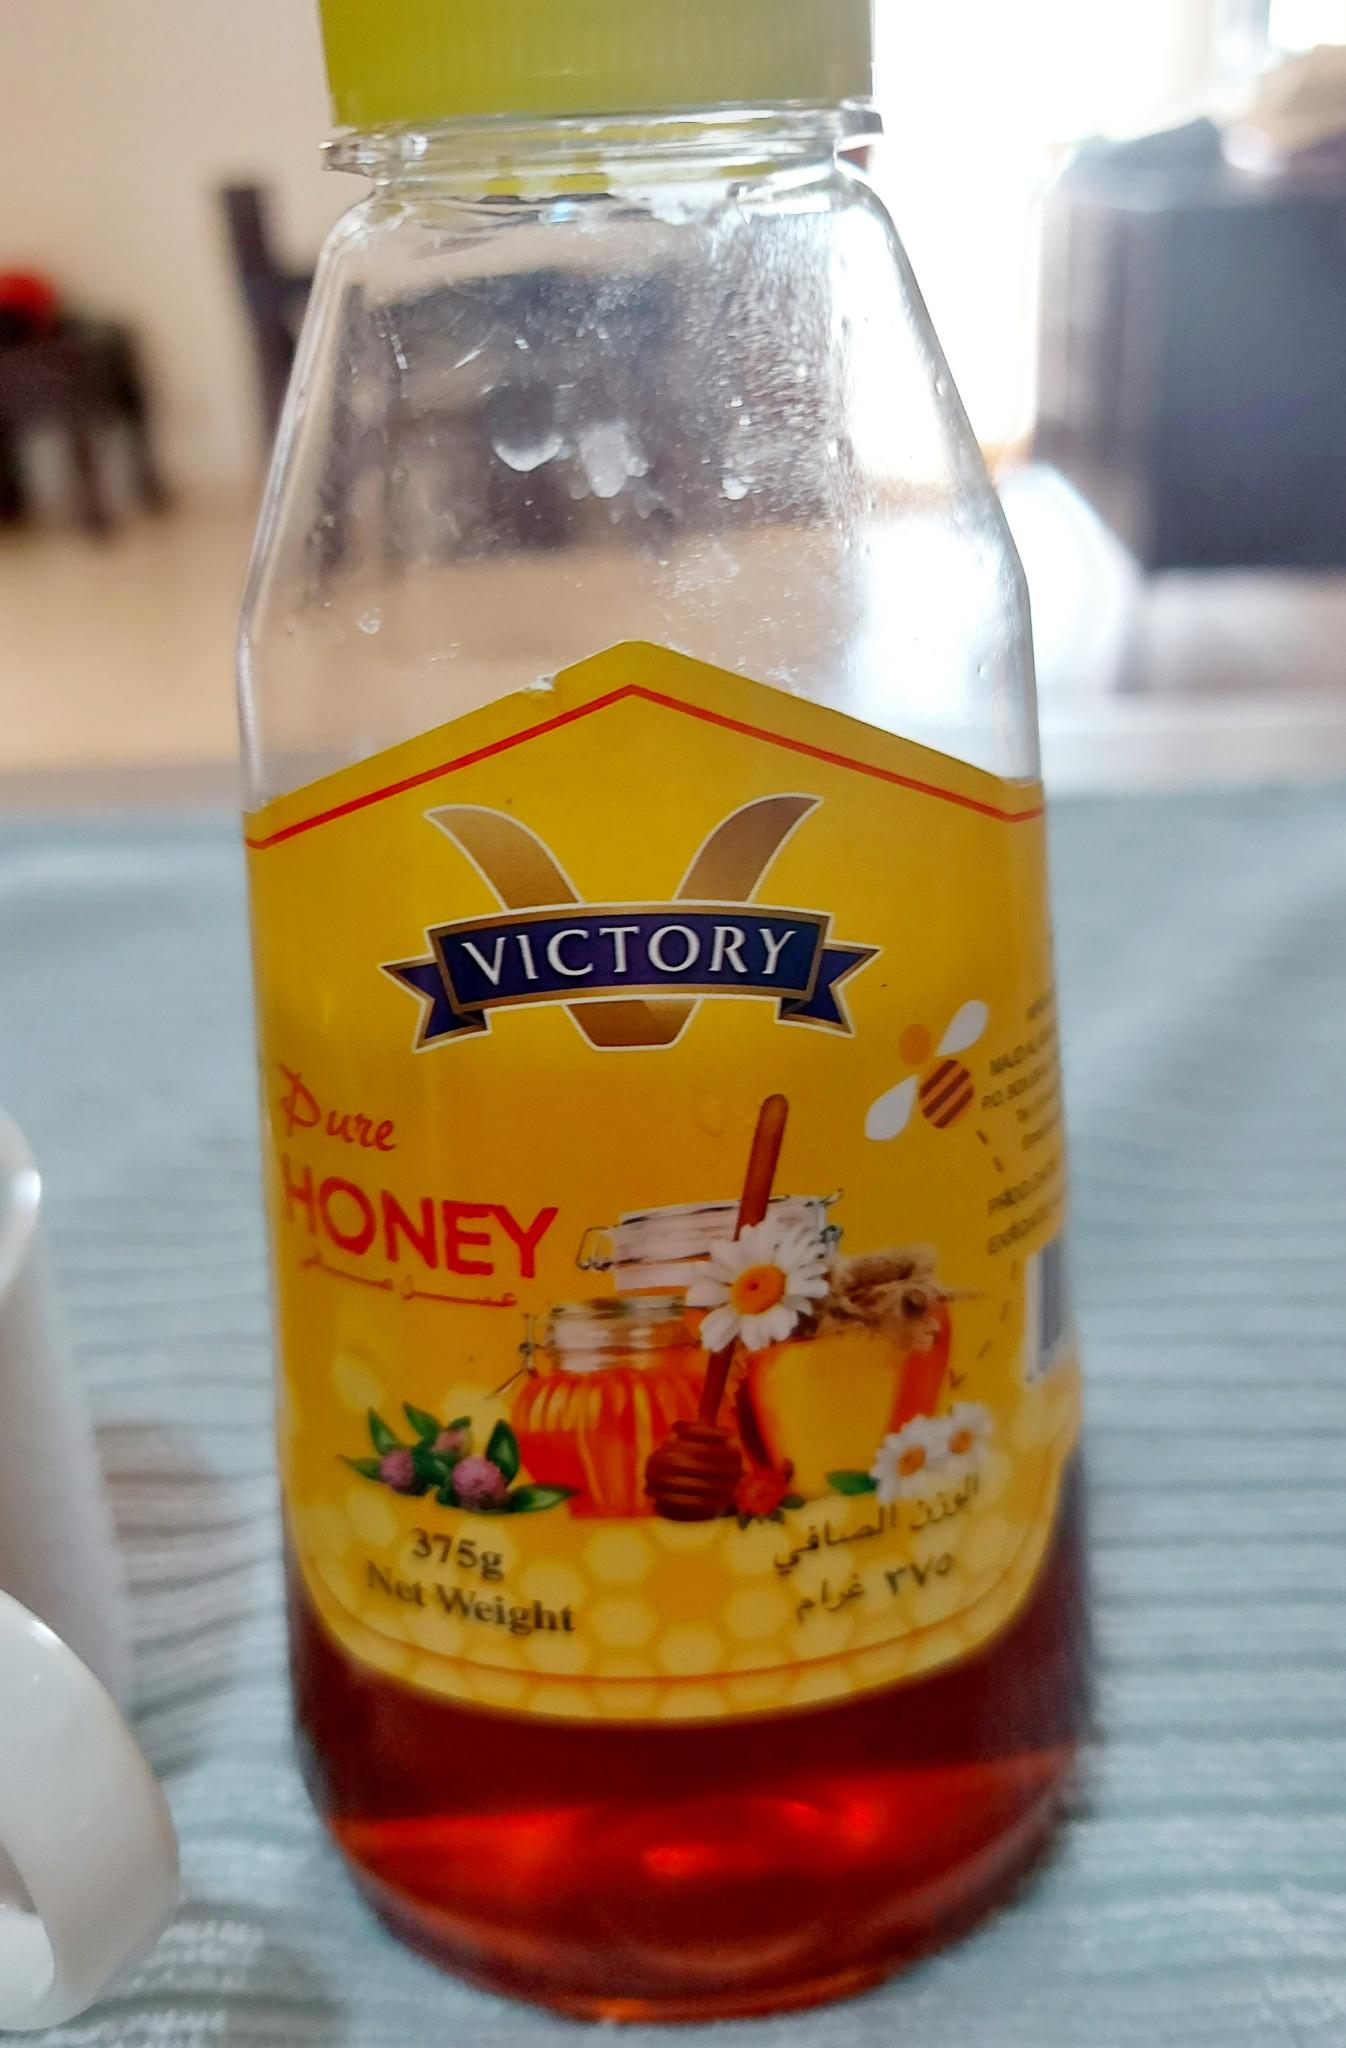 I made wine-honey-17-july-jpg